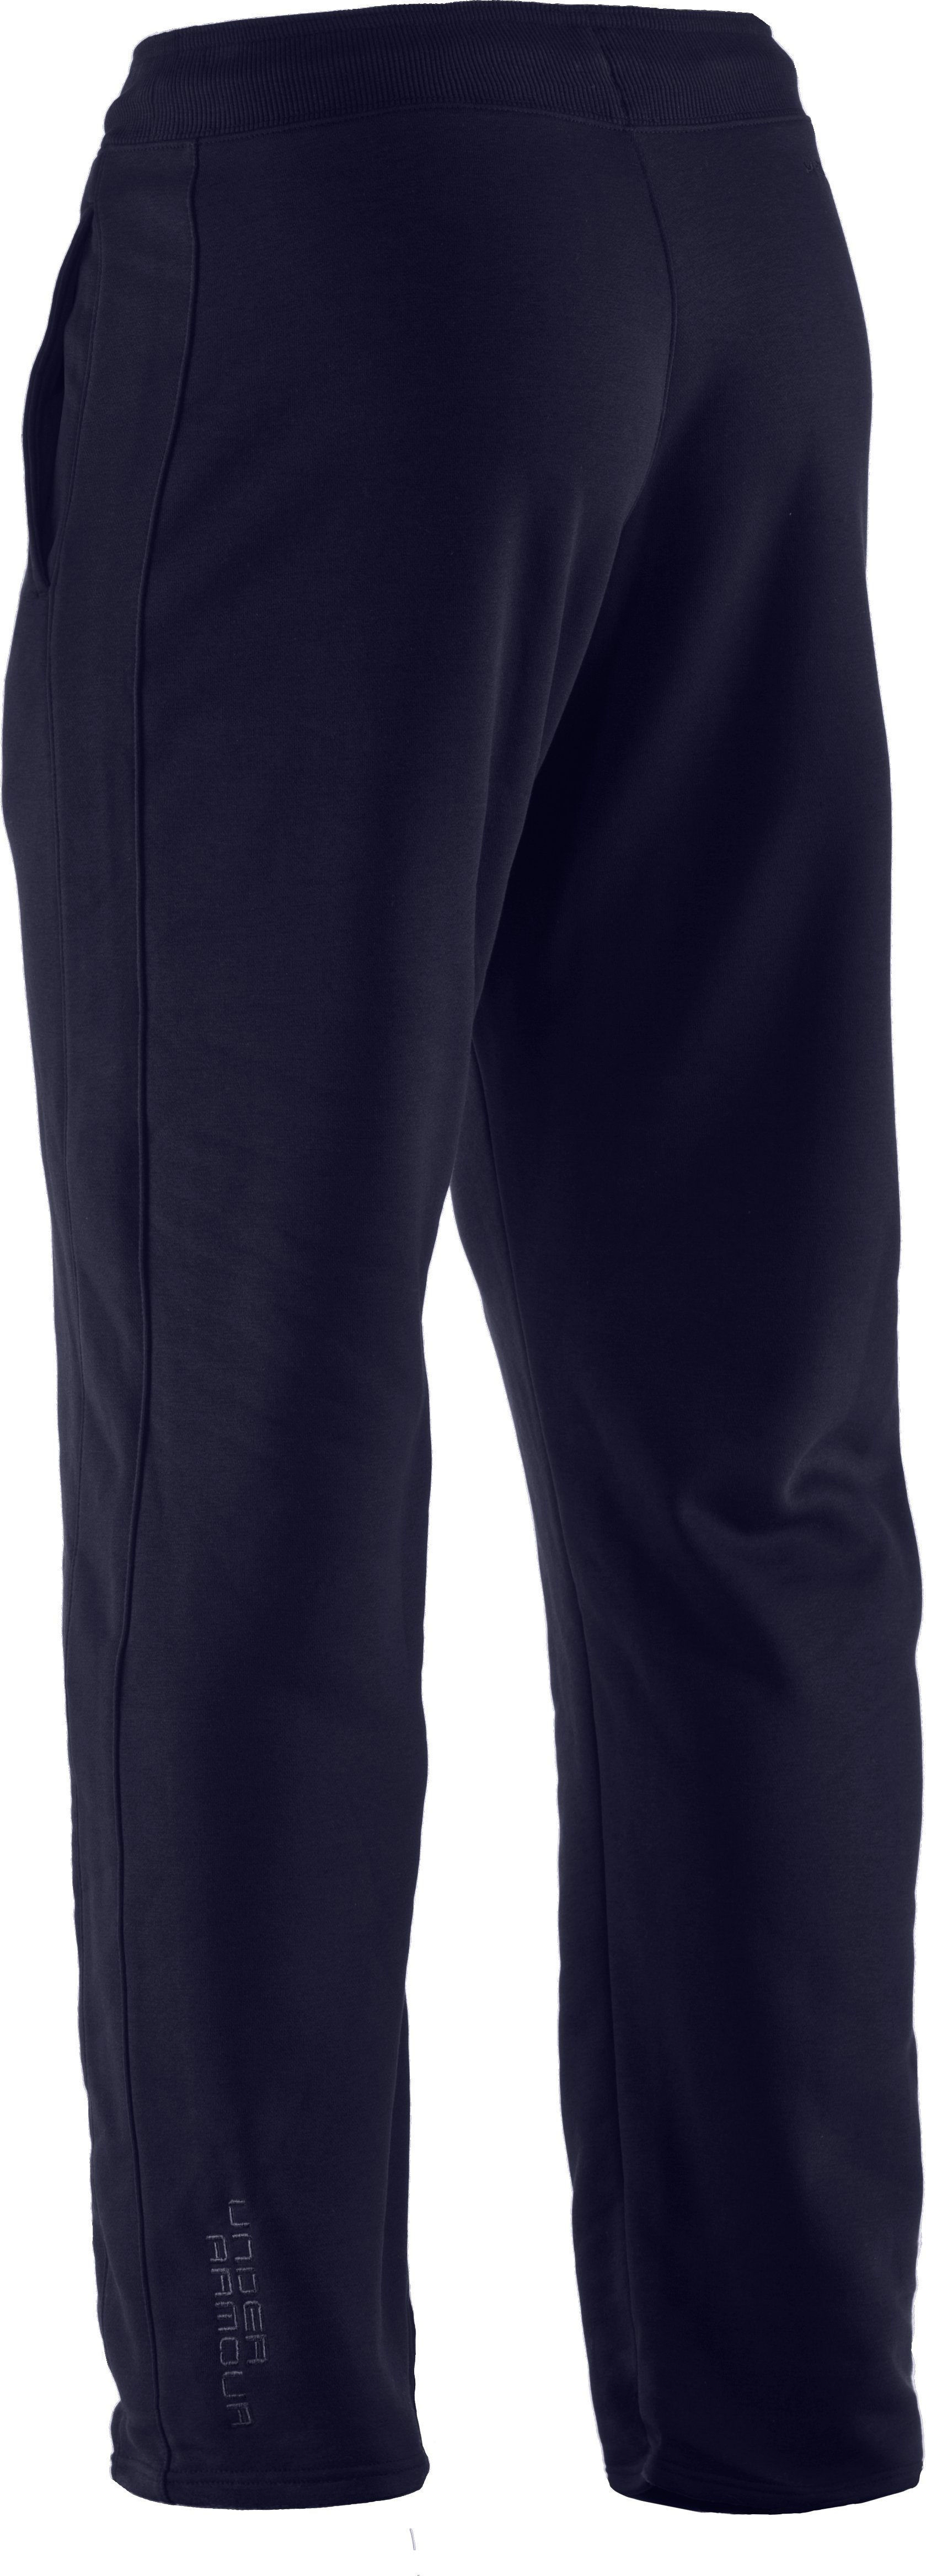 Men's Charged Cotton® Storm Pants, Midnight Navy